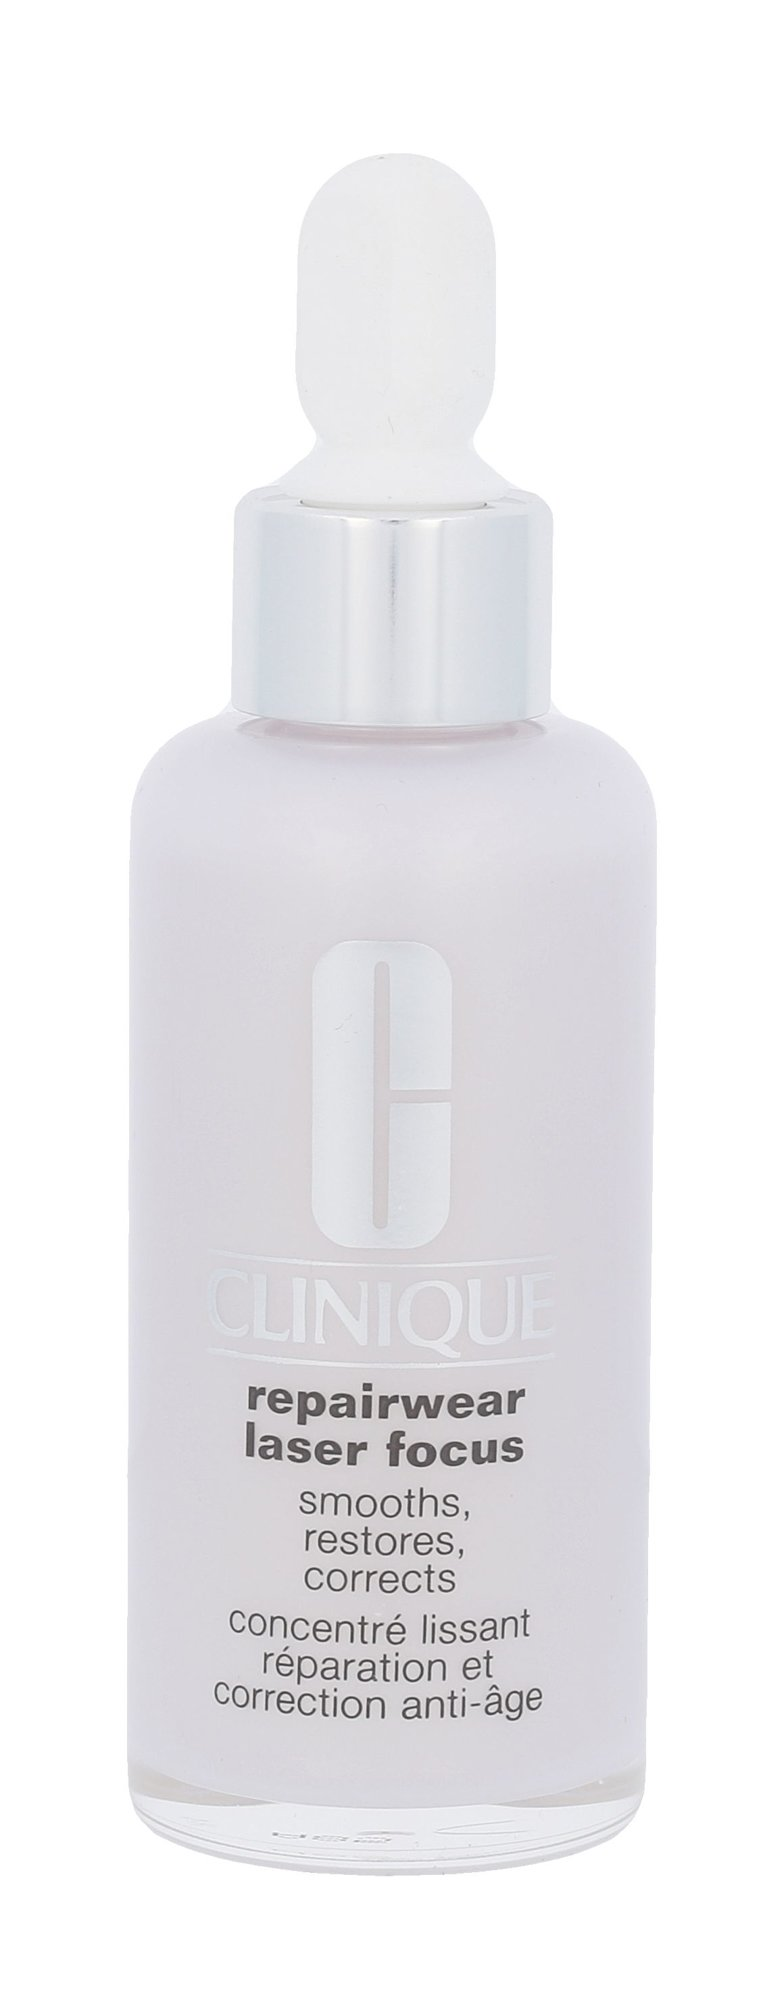 Clinique Repairwear Laser Focus Cosmetic 50ml